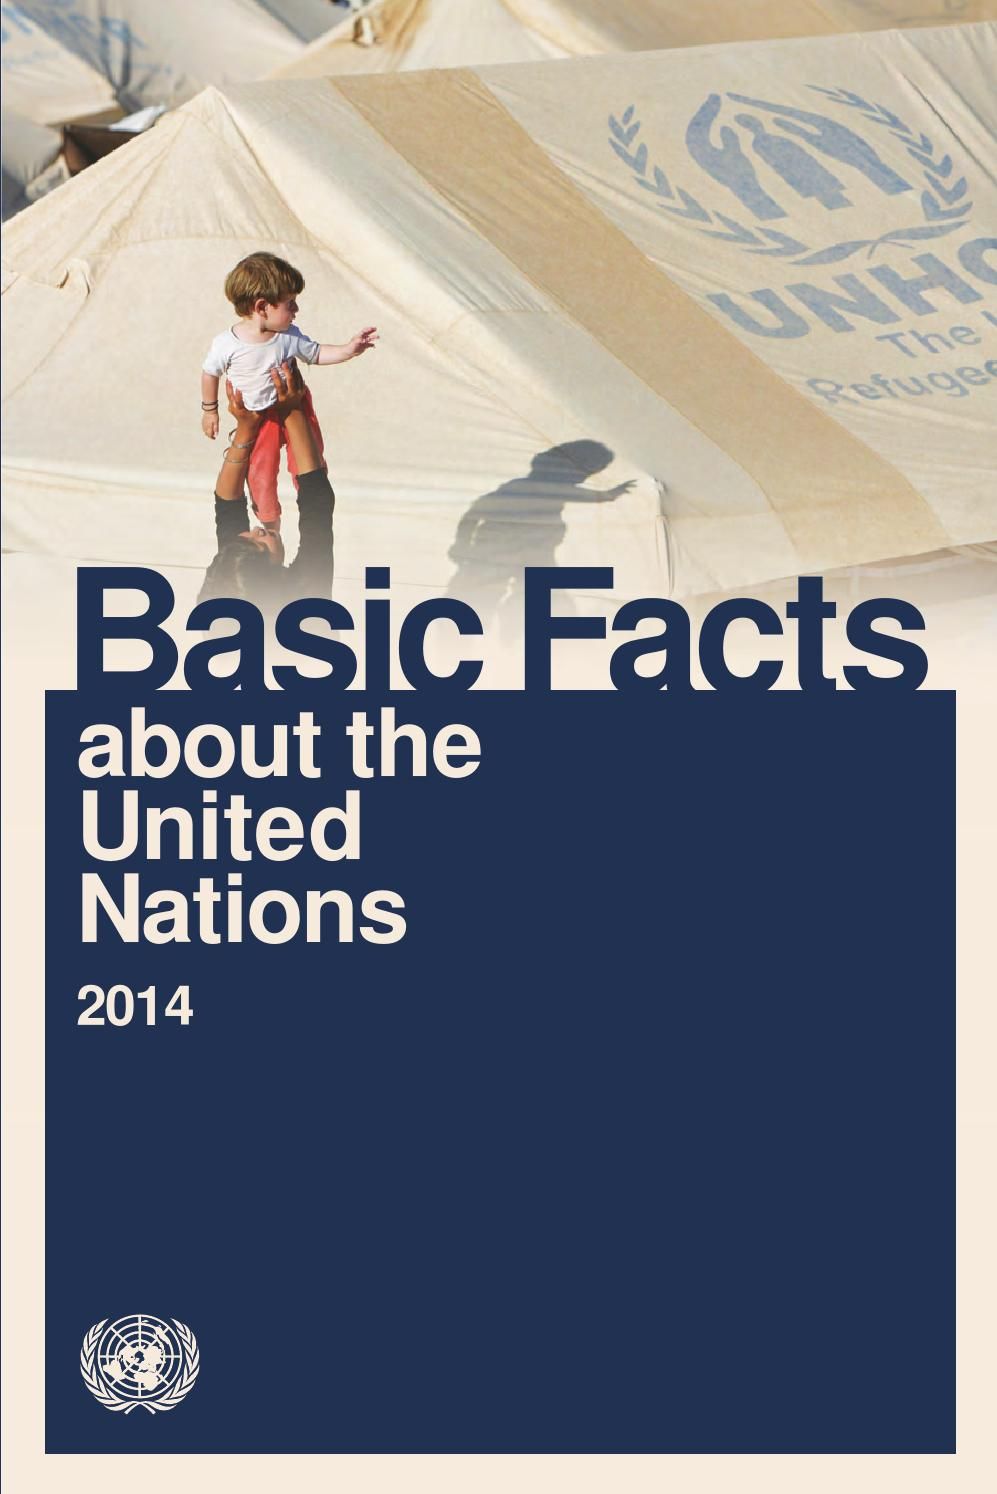 Un+1 - Un : Basic, Facts, About, United, Nations, Publications, Issuu